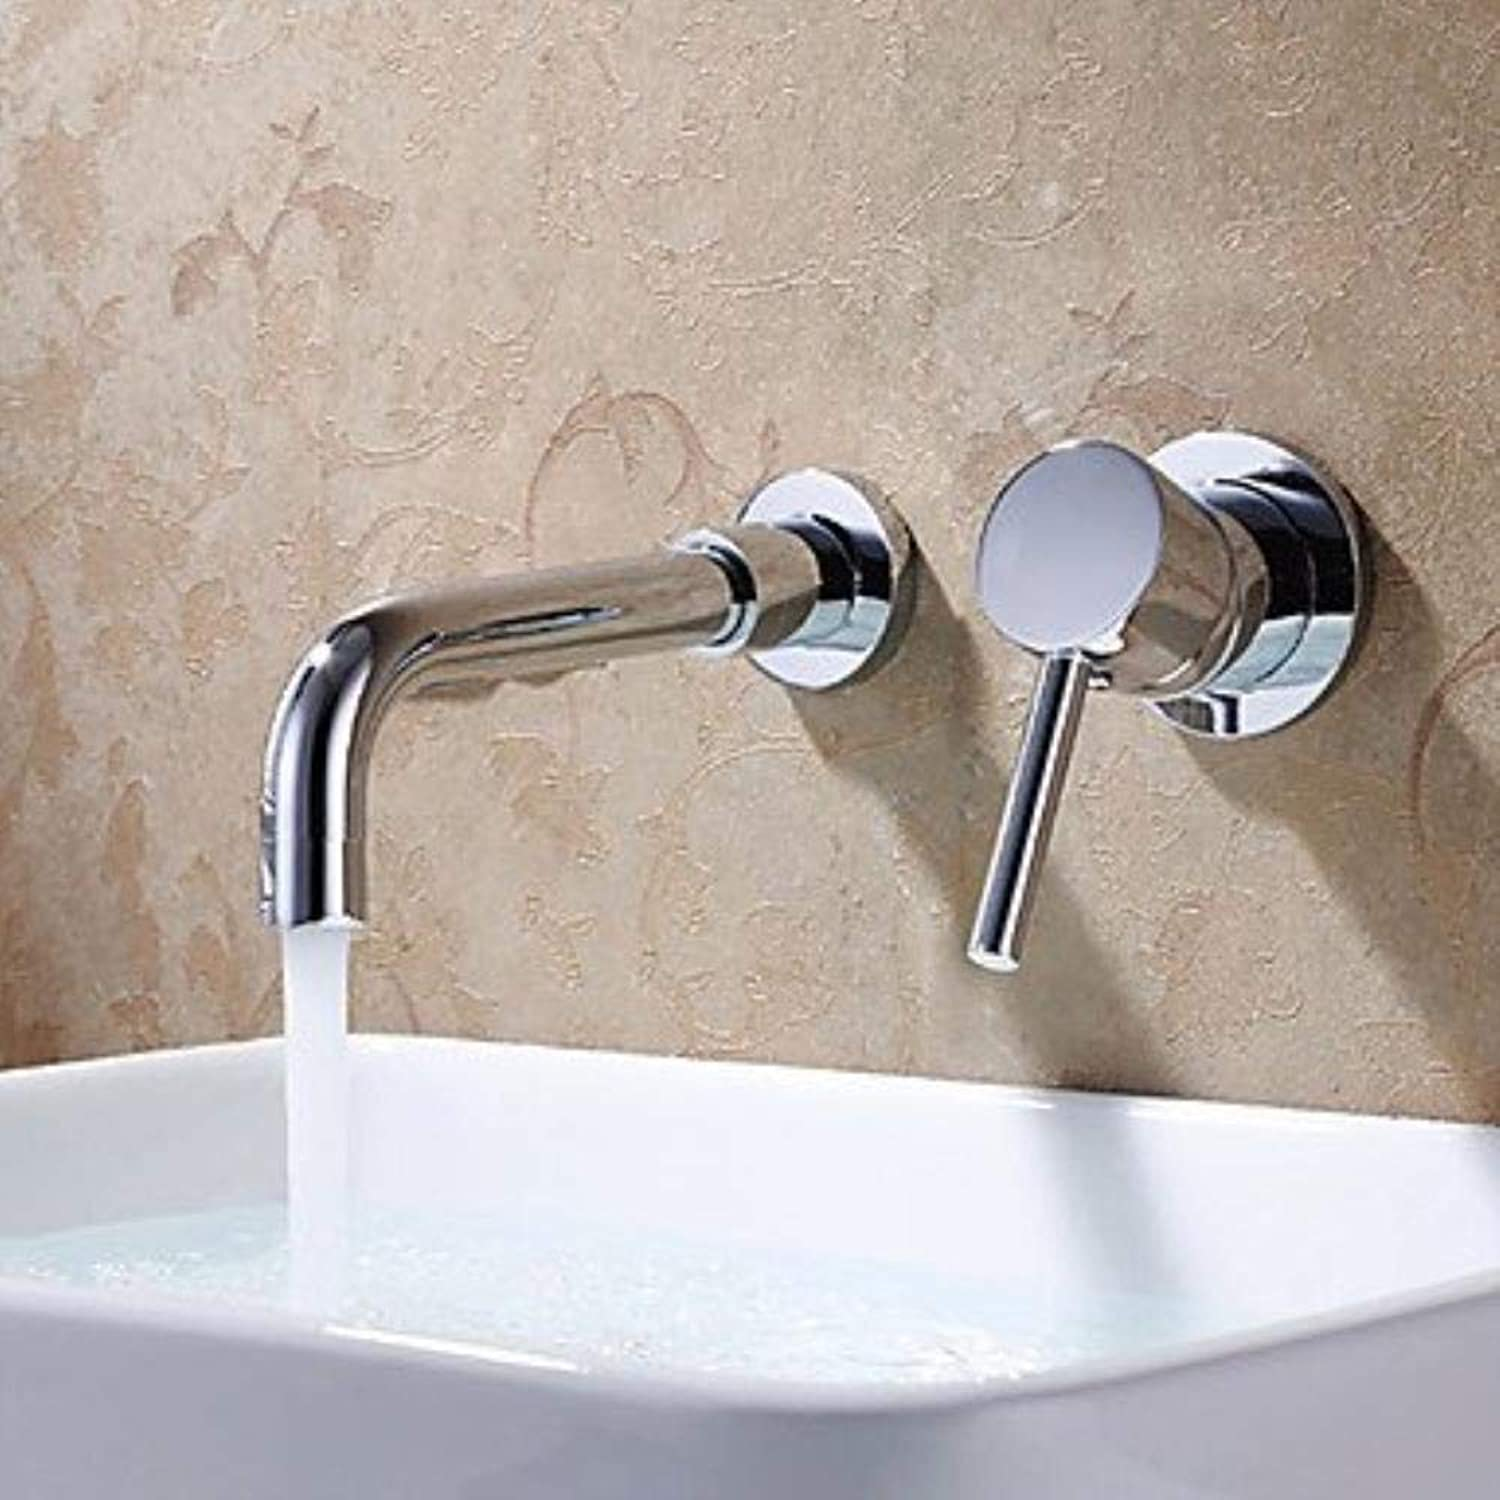 Contemporary Wall Mounted Widespread withCeramic Valve Two Holes Single Handle Two Holes forChrome, Bathroom Sink Faucet